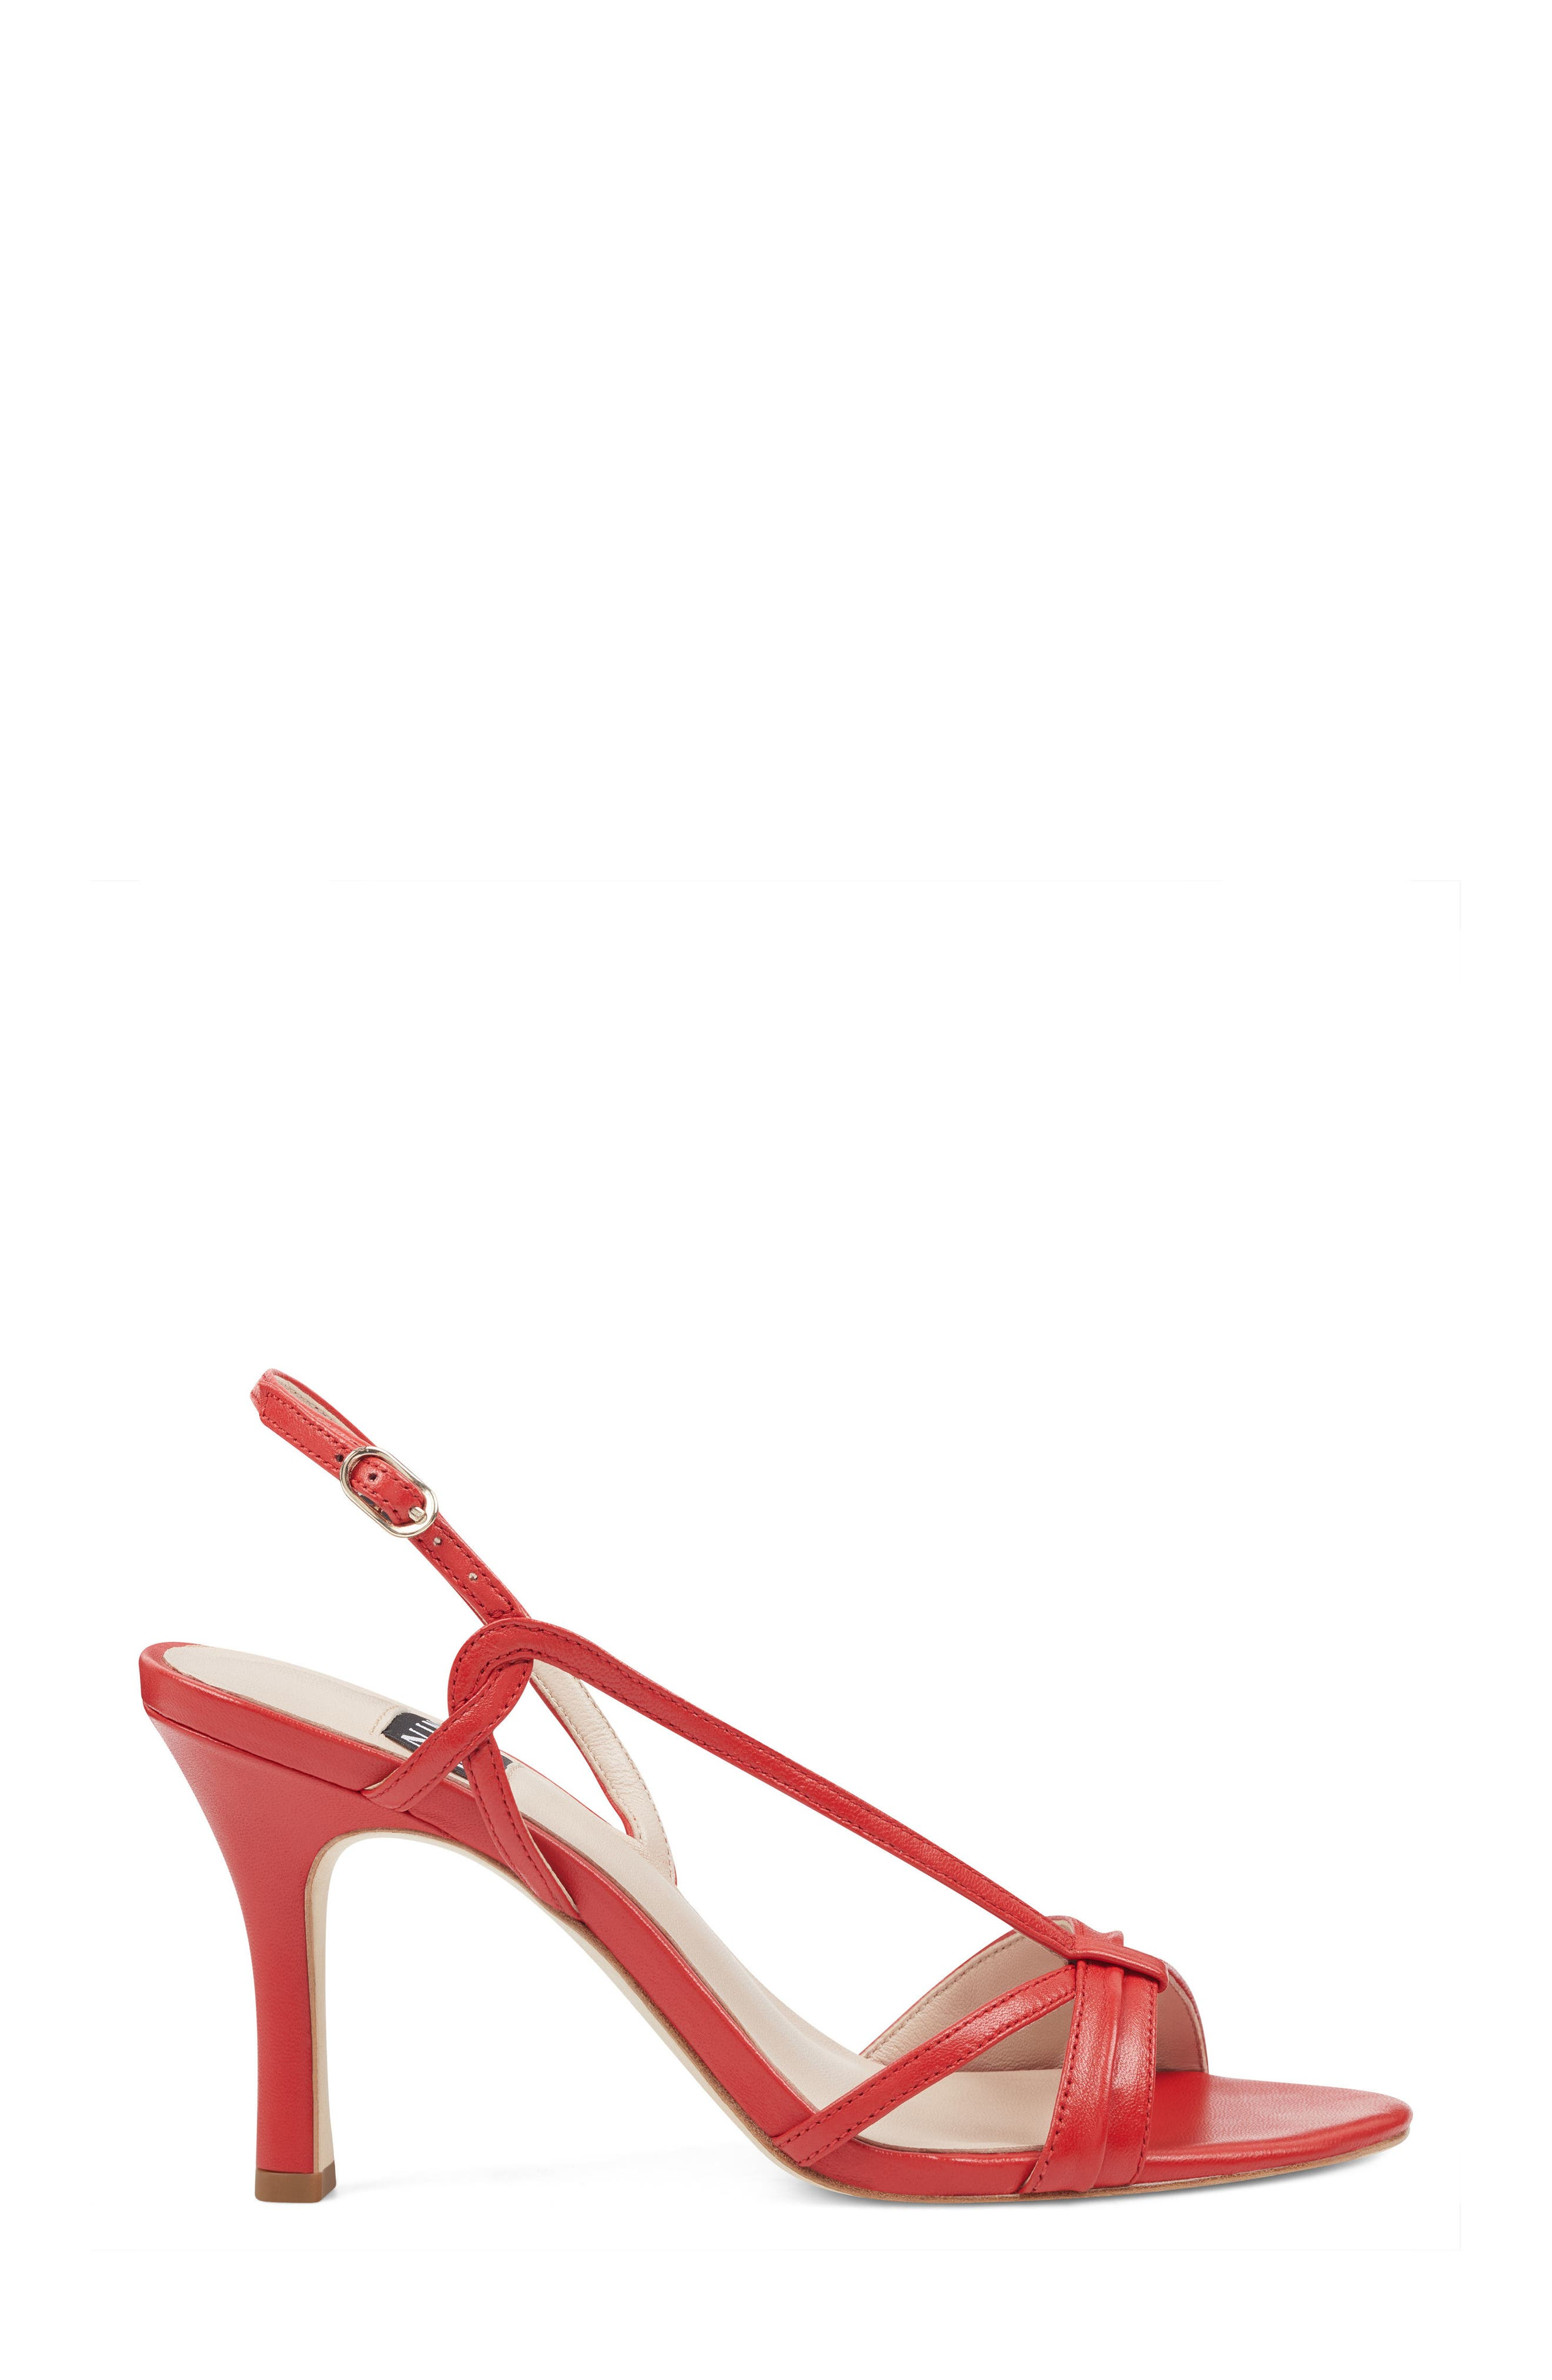 Accolia - 40th Anniversary Capsule Collection Sandal,                             Alternate thumbnail 3, color,                             Red Leather